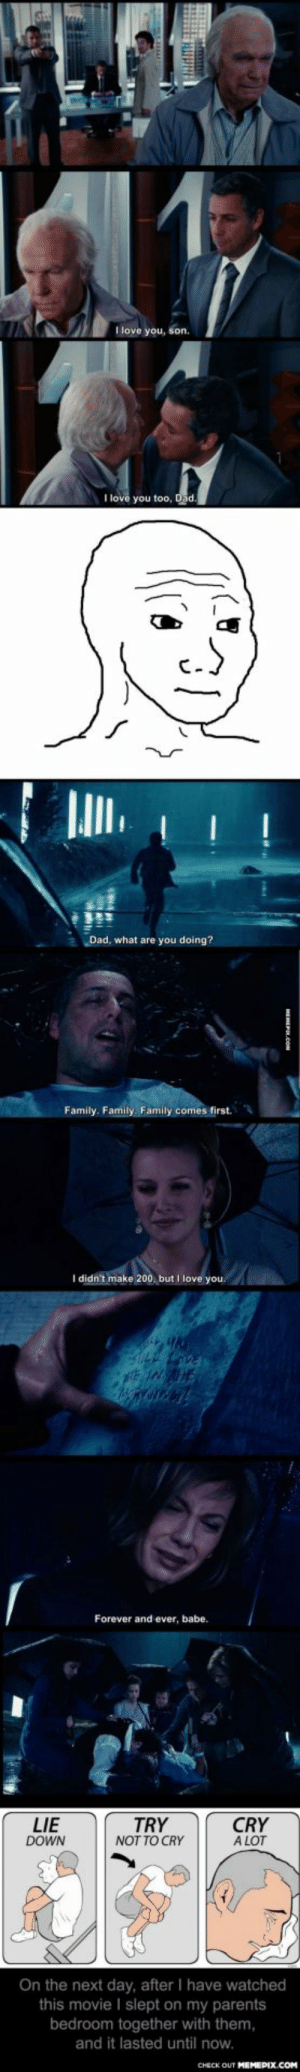 Watched this Movie together with my parents, Holding not to cry in front of them - but still can't hold it.omg-humor.tumblr.com: I love you, son.  I love  Dad, what are you doing?  Family. Family. Family comes first.  I didn't make 200, but I love you.  Forever and ever, babe.  864  CRY  A LOT  LIE  DOWN  TRY  NOT TO CRY  On the next day, after I have watched  this movie I slept on my parents  bedroom together with them,  and it lasted until now.  CHECK OUT MEMEPIX.COM Watched this Movie together with my parents, Holding not to cry in front of them - but still can't hold it.omg-humor.tumblr.com